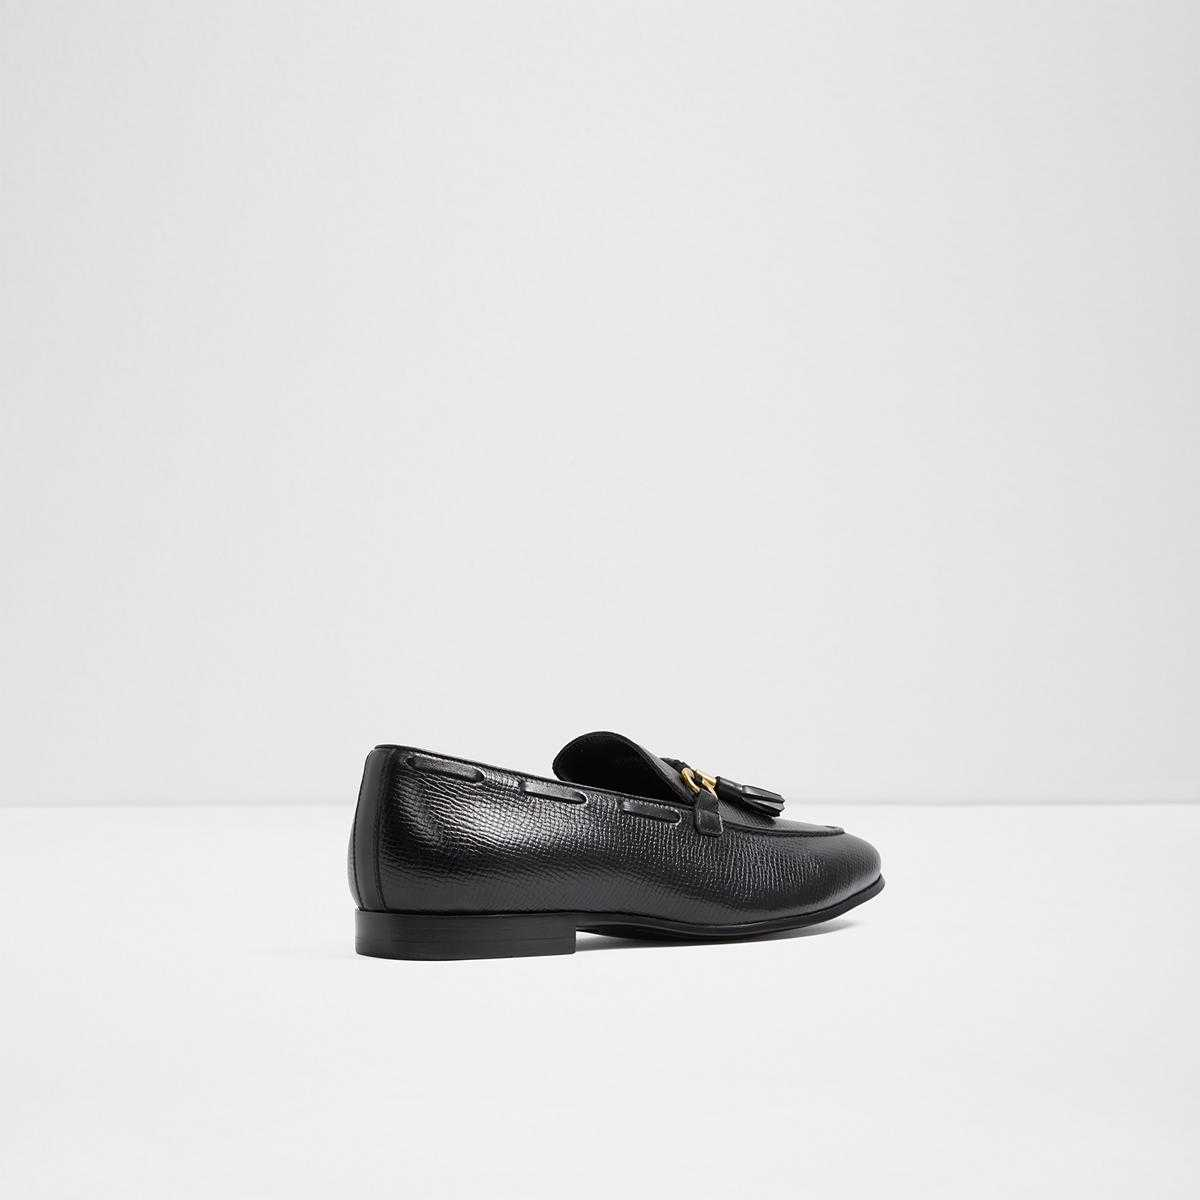 Olaleviel Black Leather Embossed Men's Loafers